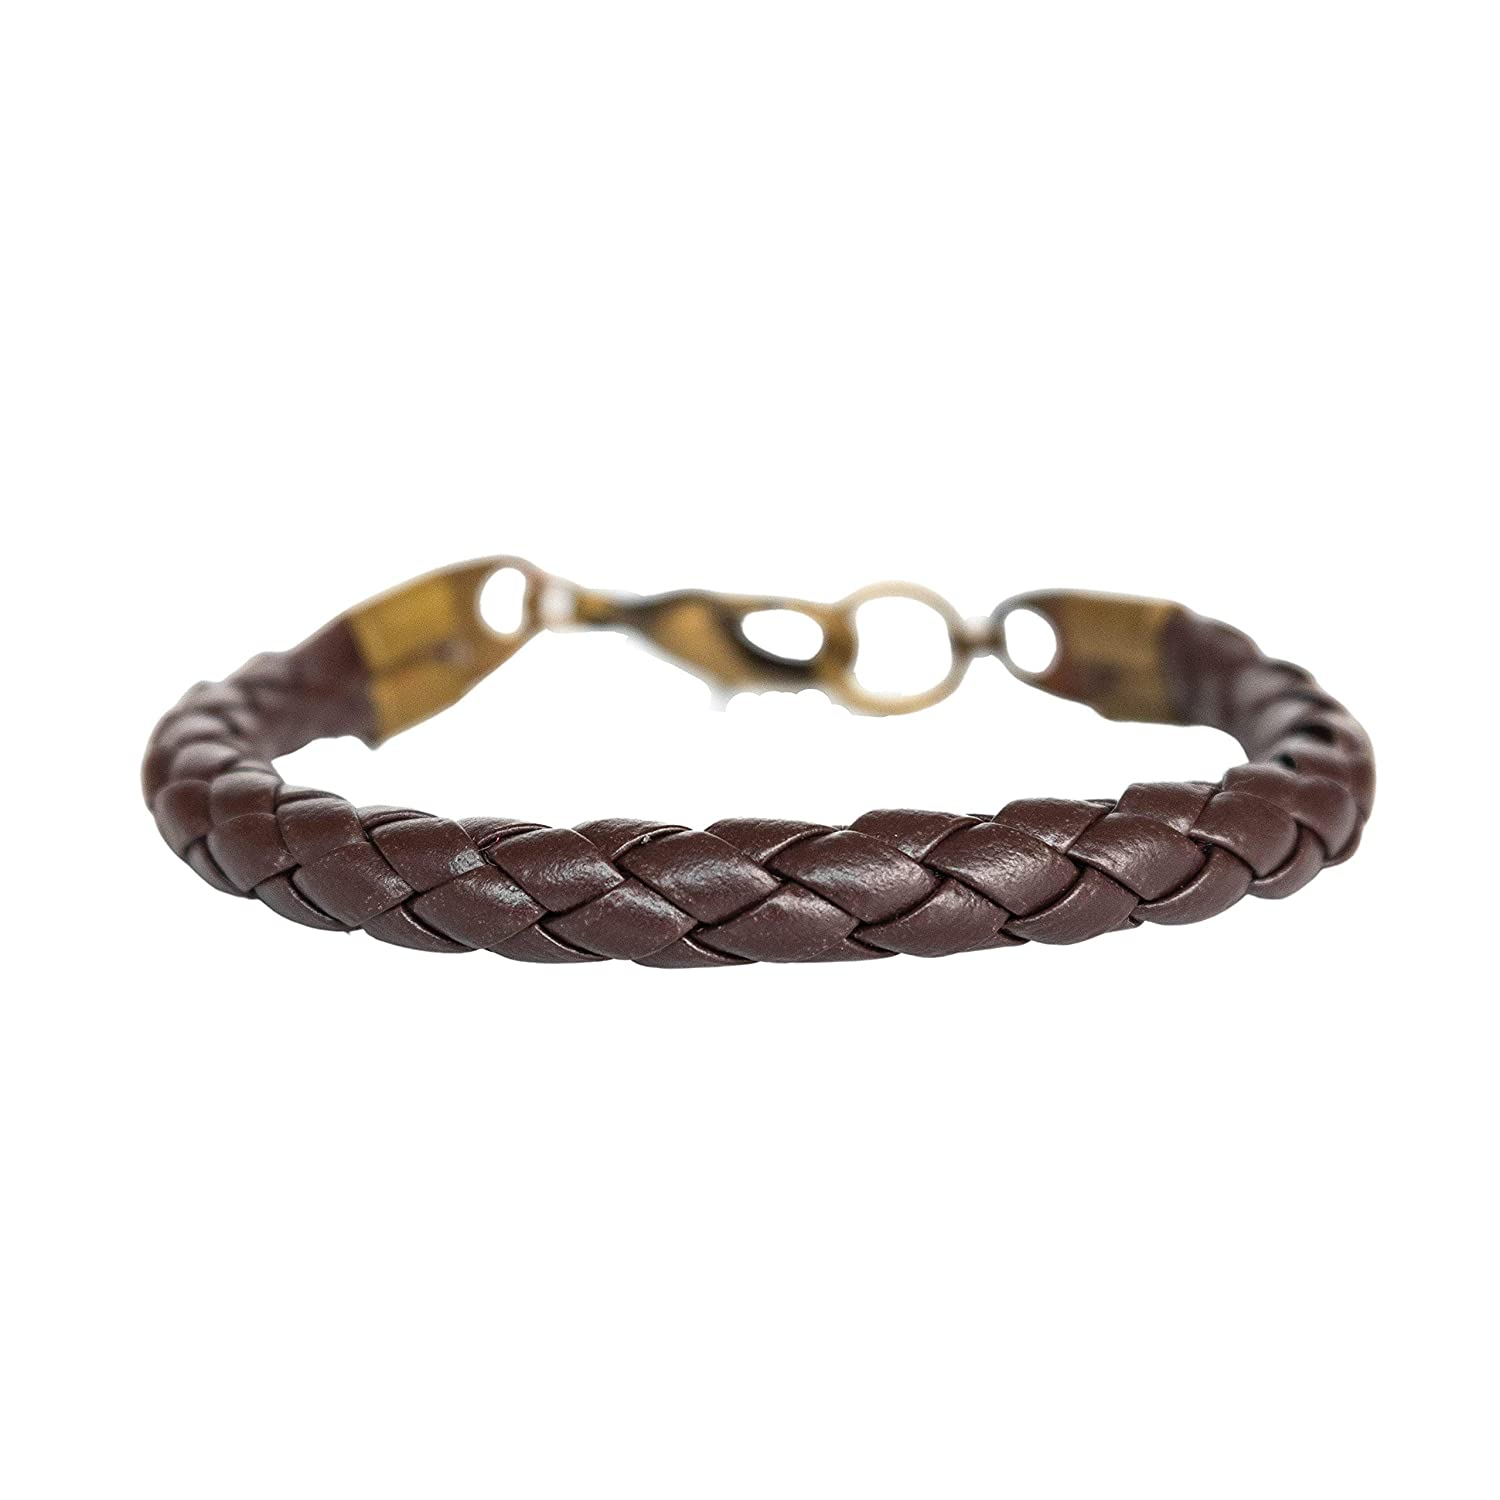 Mens Bolo Braided Bracelet  Antiqued Brown Leather and Sterling Silver  men dude guy man  rustic rugged tough bohemian manly rocker style